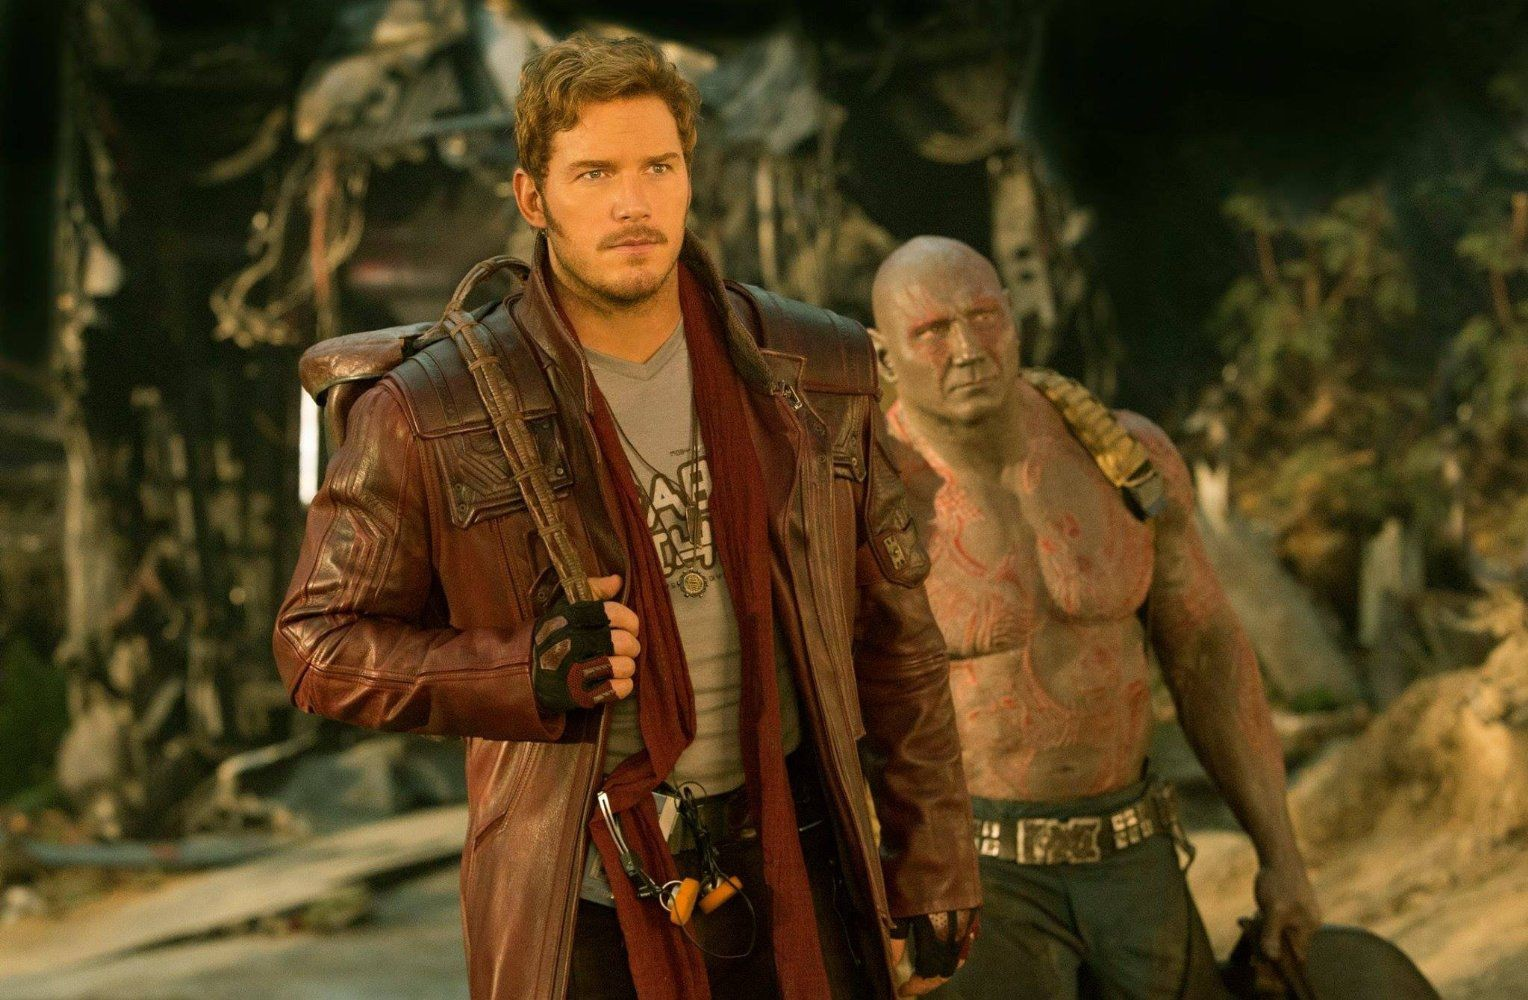 Chris Pratt and Dave Bautista return to the big screen in 'Guardians of the Galaxy Vol. 2,' the sequel to 2014's blockbuster hit set in the Marvel Cinematic Universe.